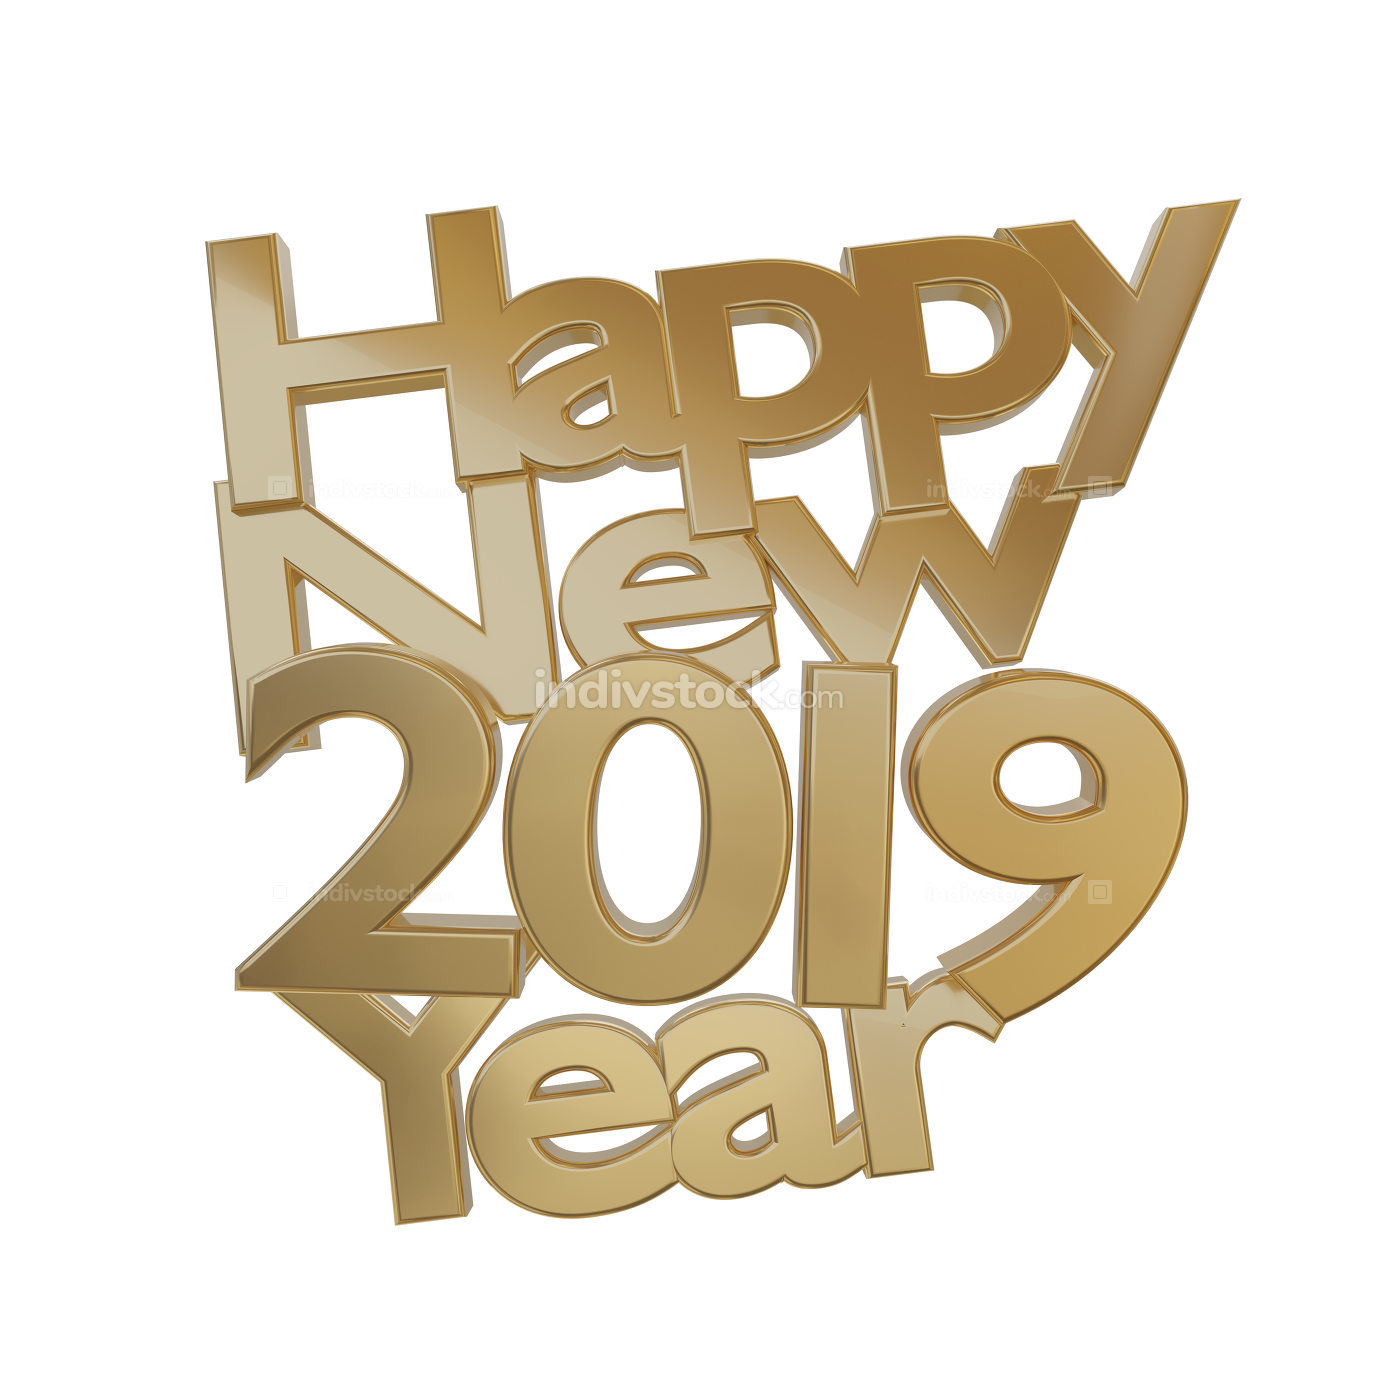 free download: happy new year 2019 3d-illustration